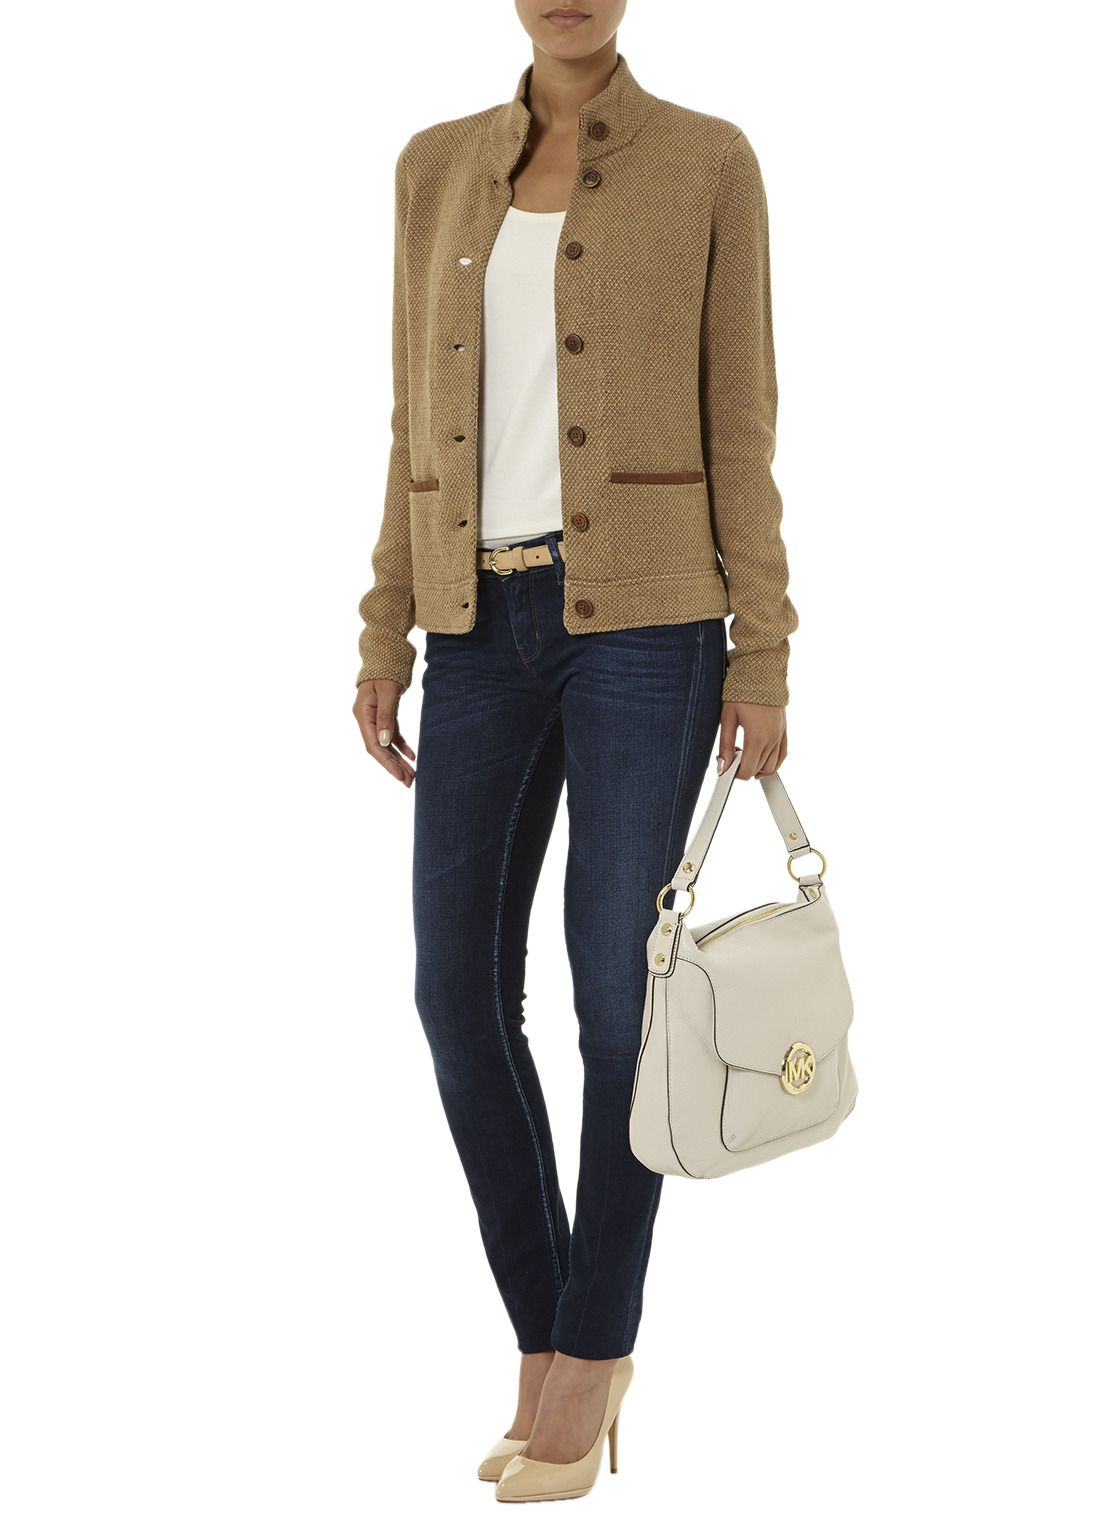 Light colored fall outfit